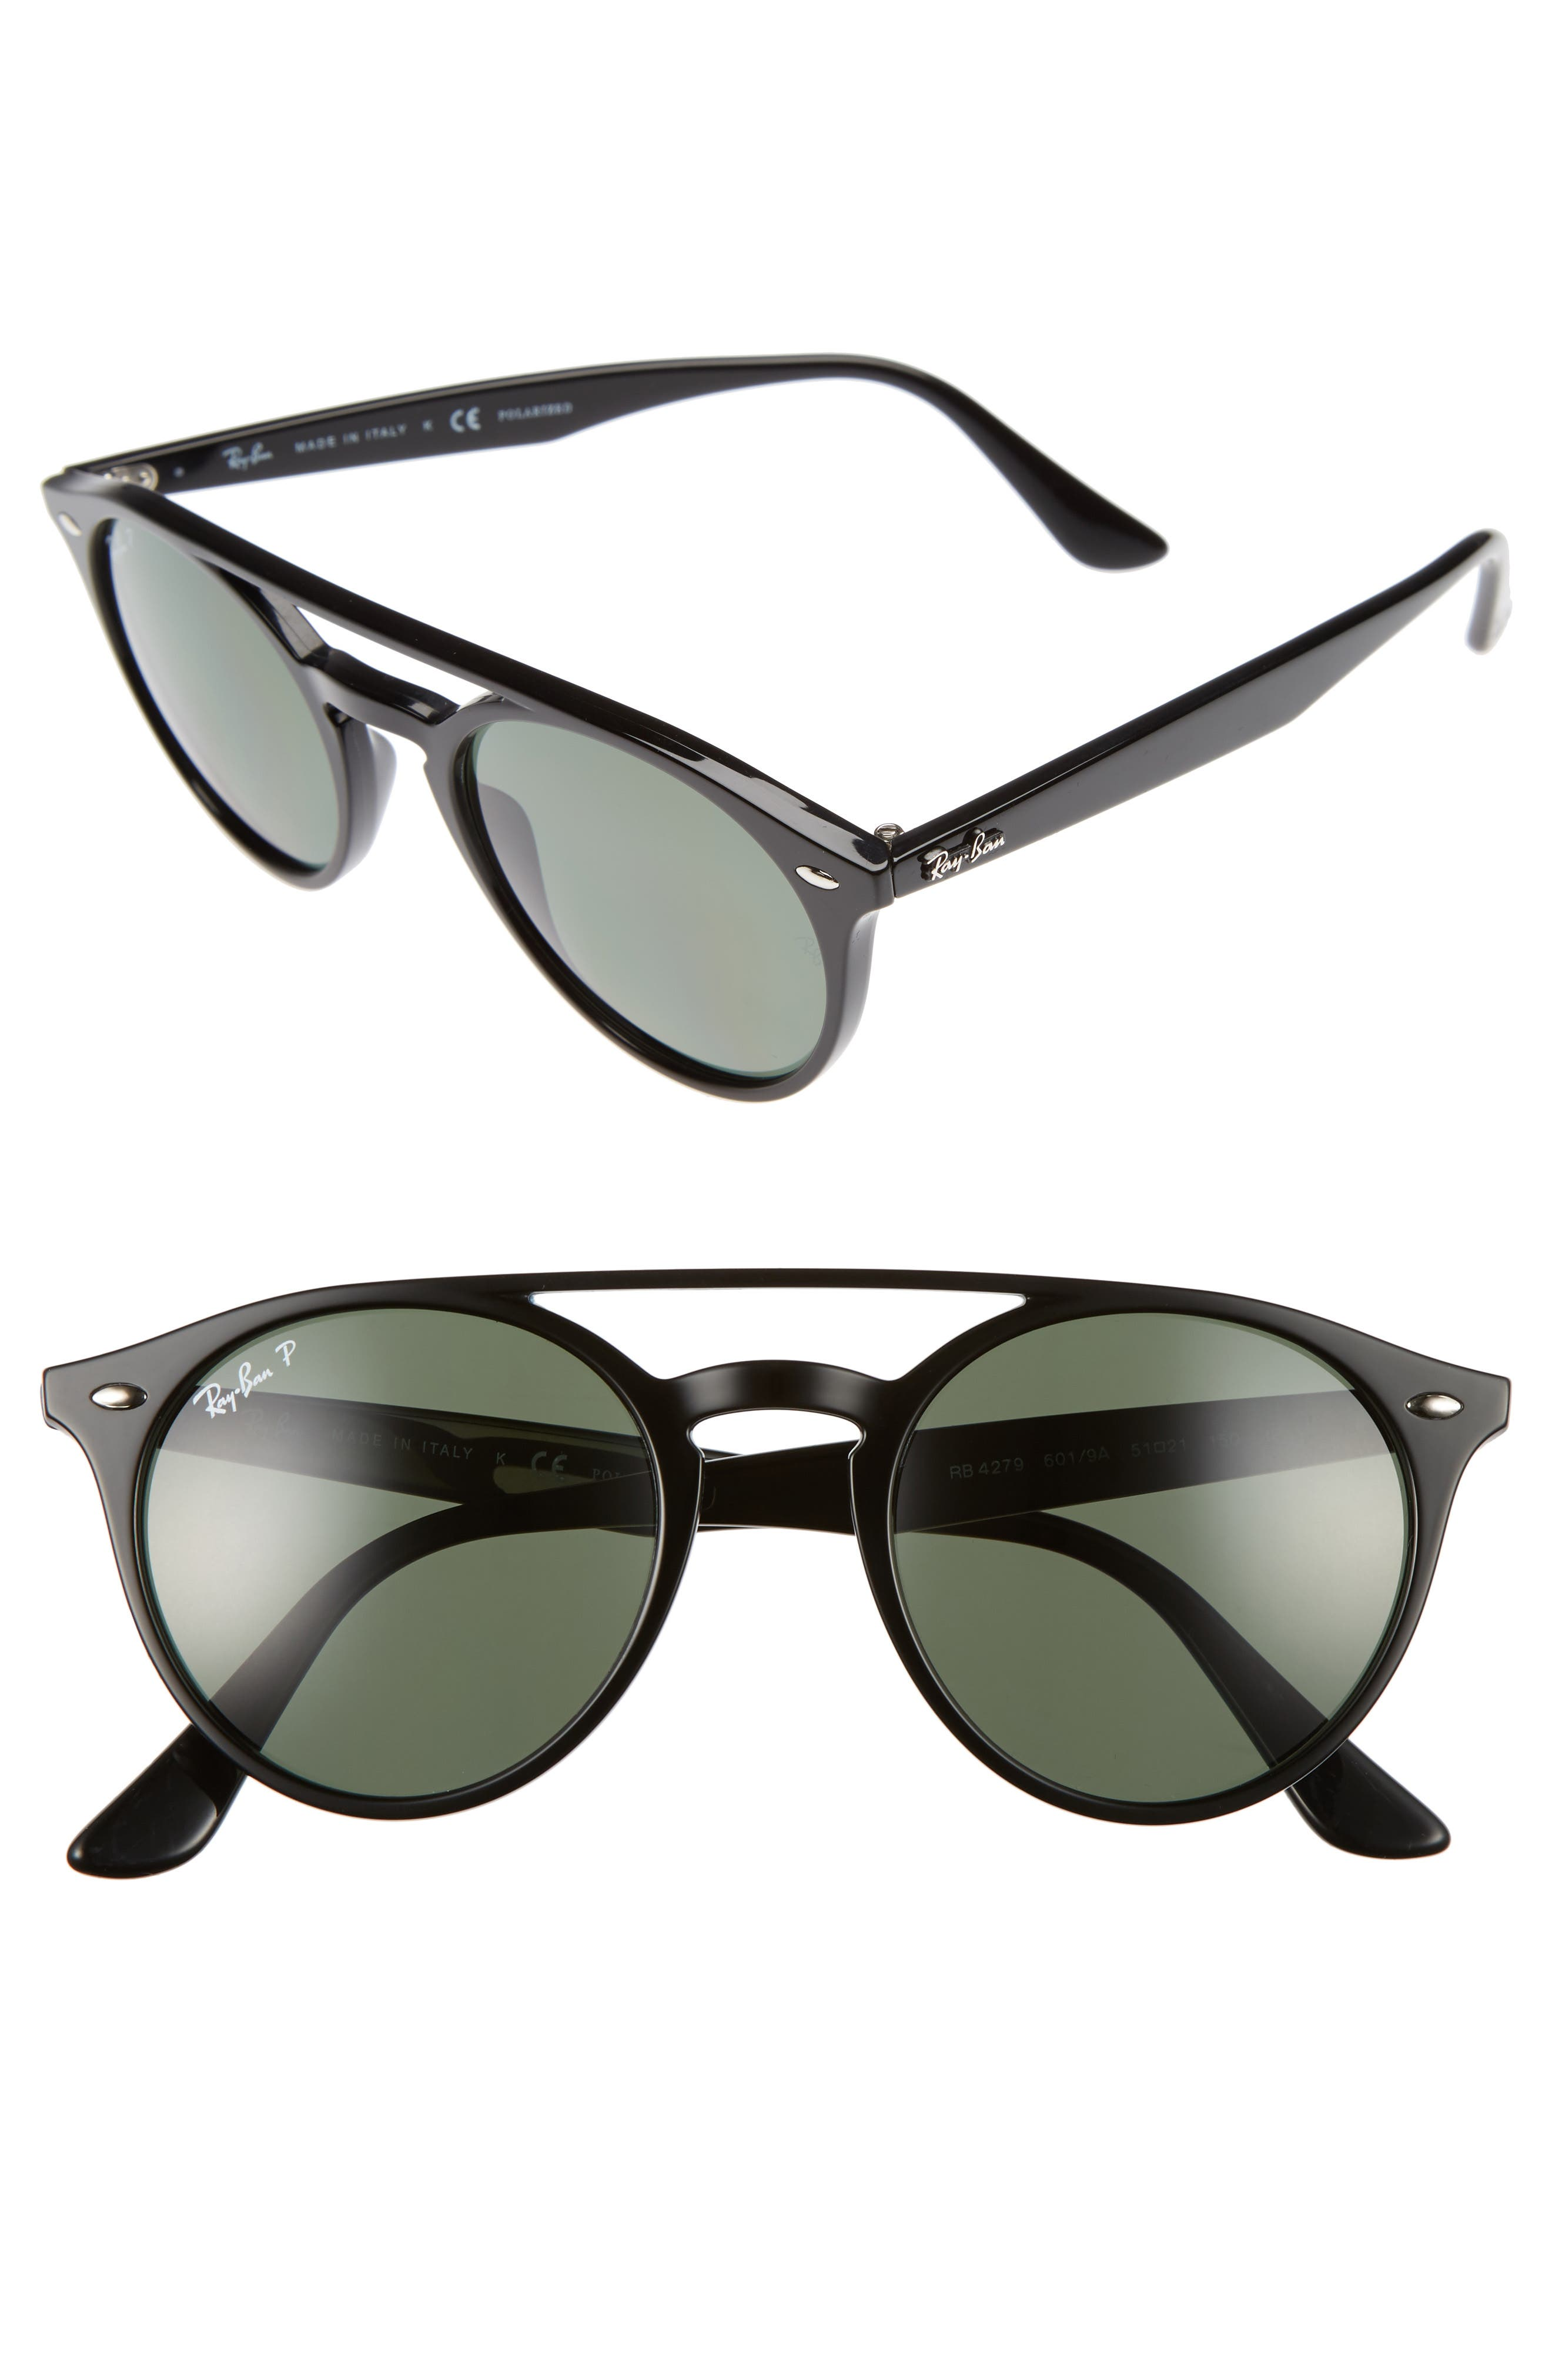 51mm Polarized Round Sunglasses,                         Main,                         color, 001